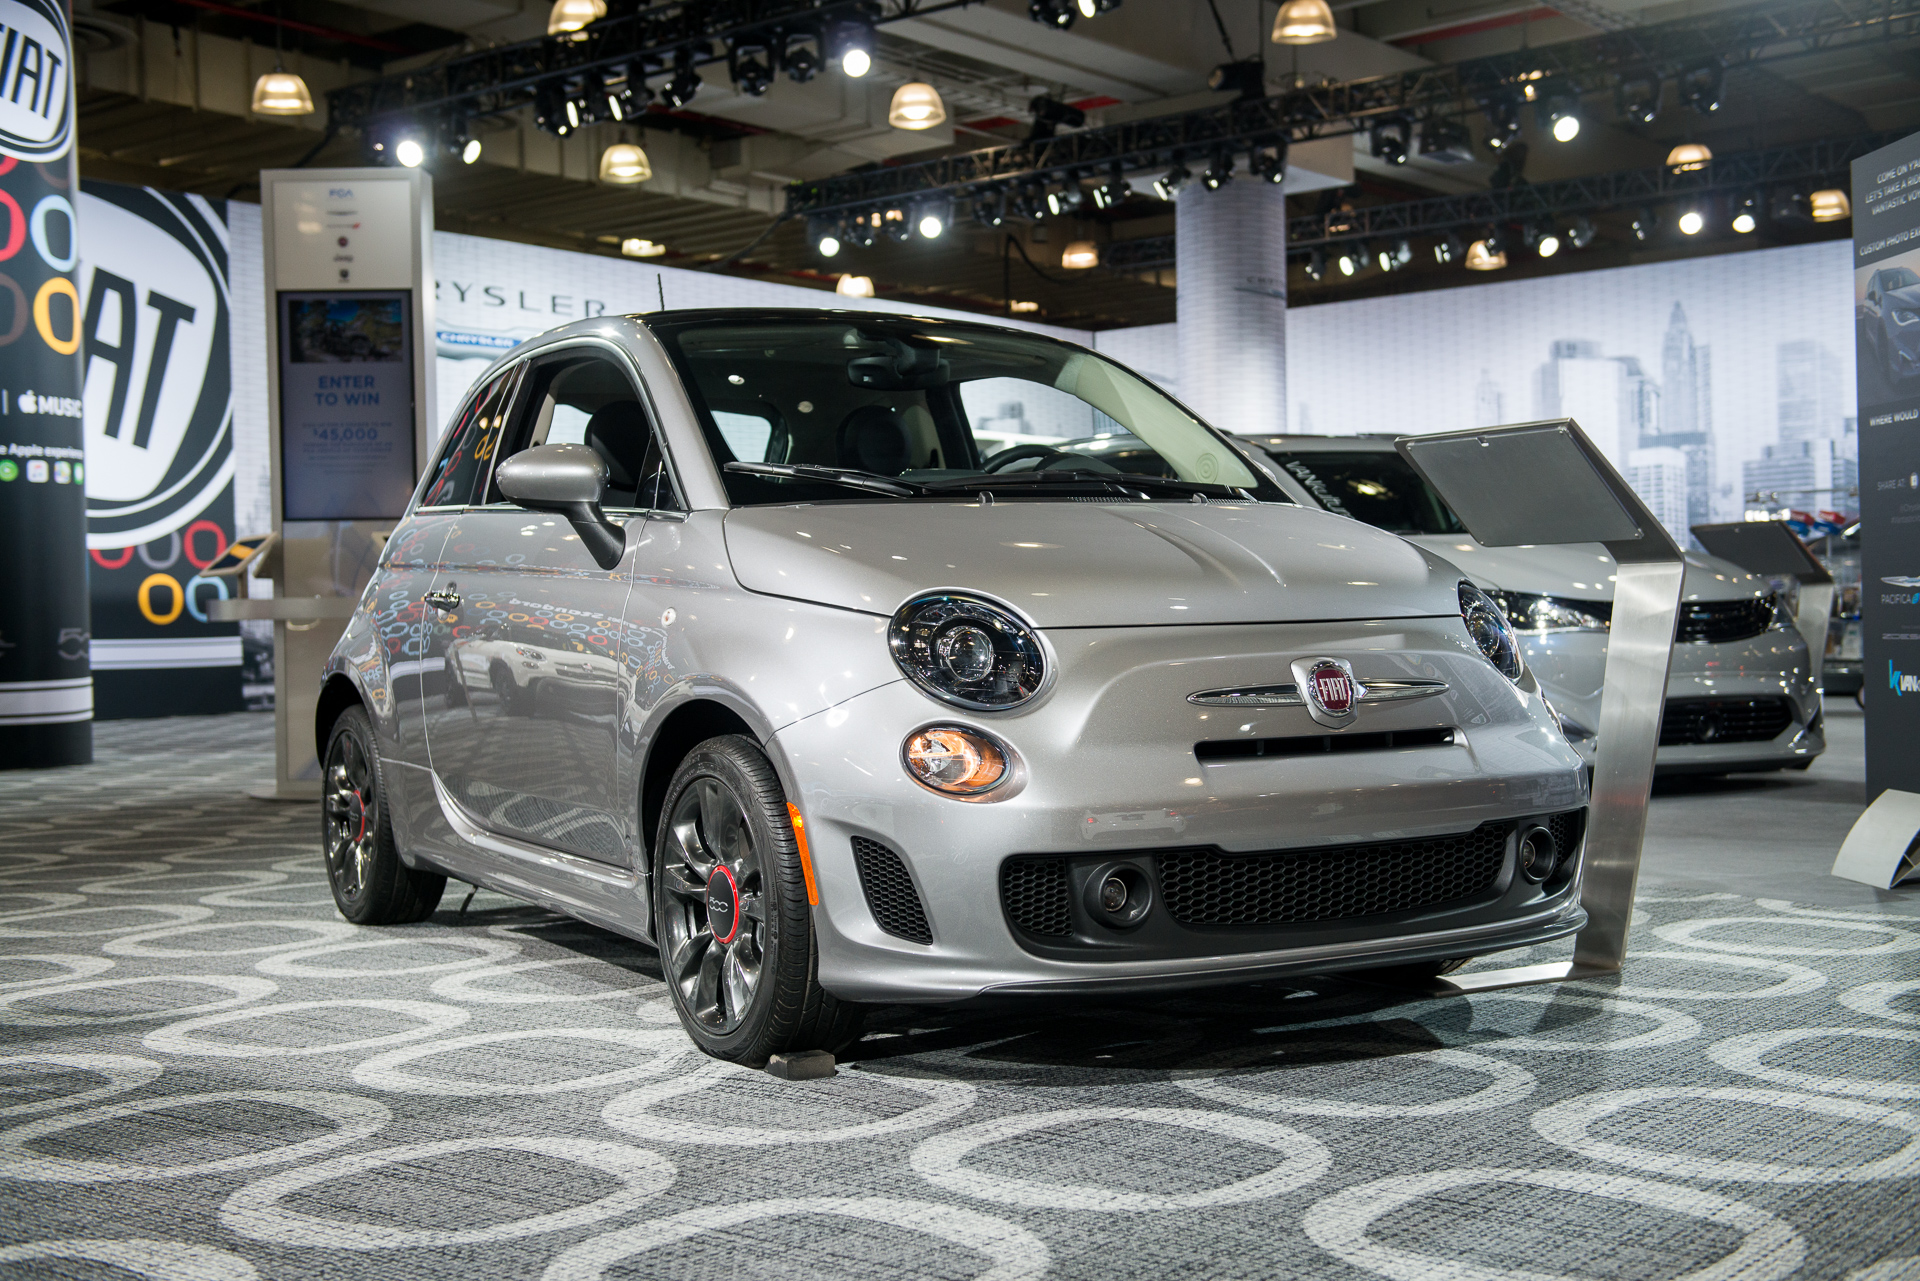 2018 fiat 500 urbana the citified subcompact car. Black Bedroom Furniture Sets. Home Design Ideas